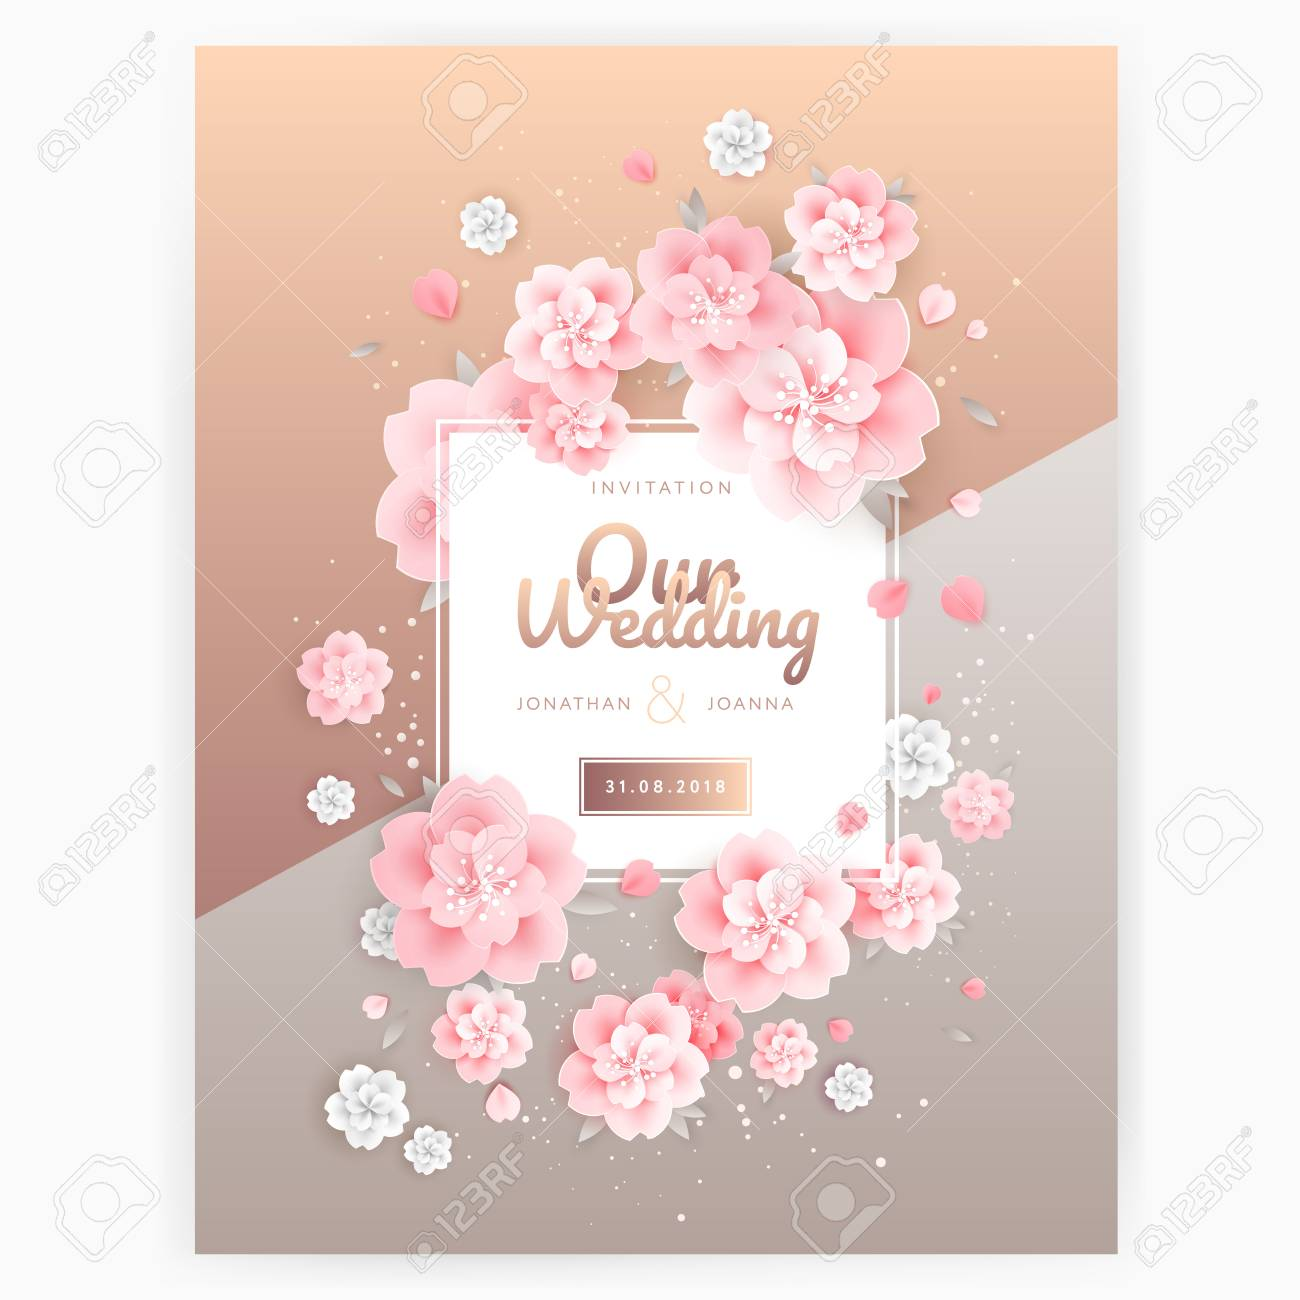 Wedding Invitation Card Background Template With Pink Floral ...